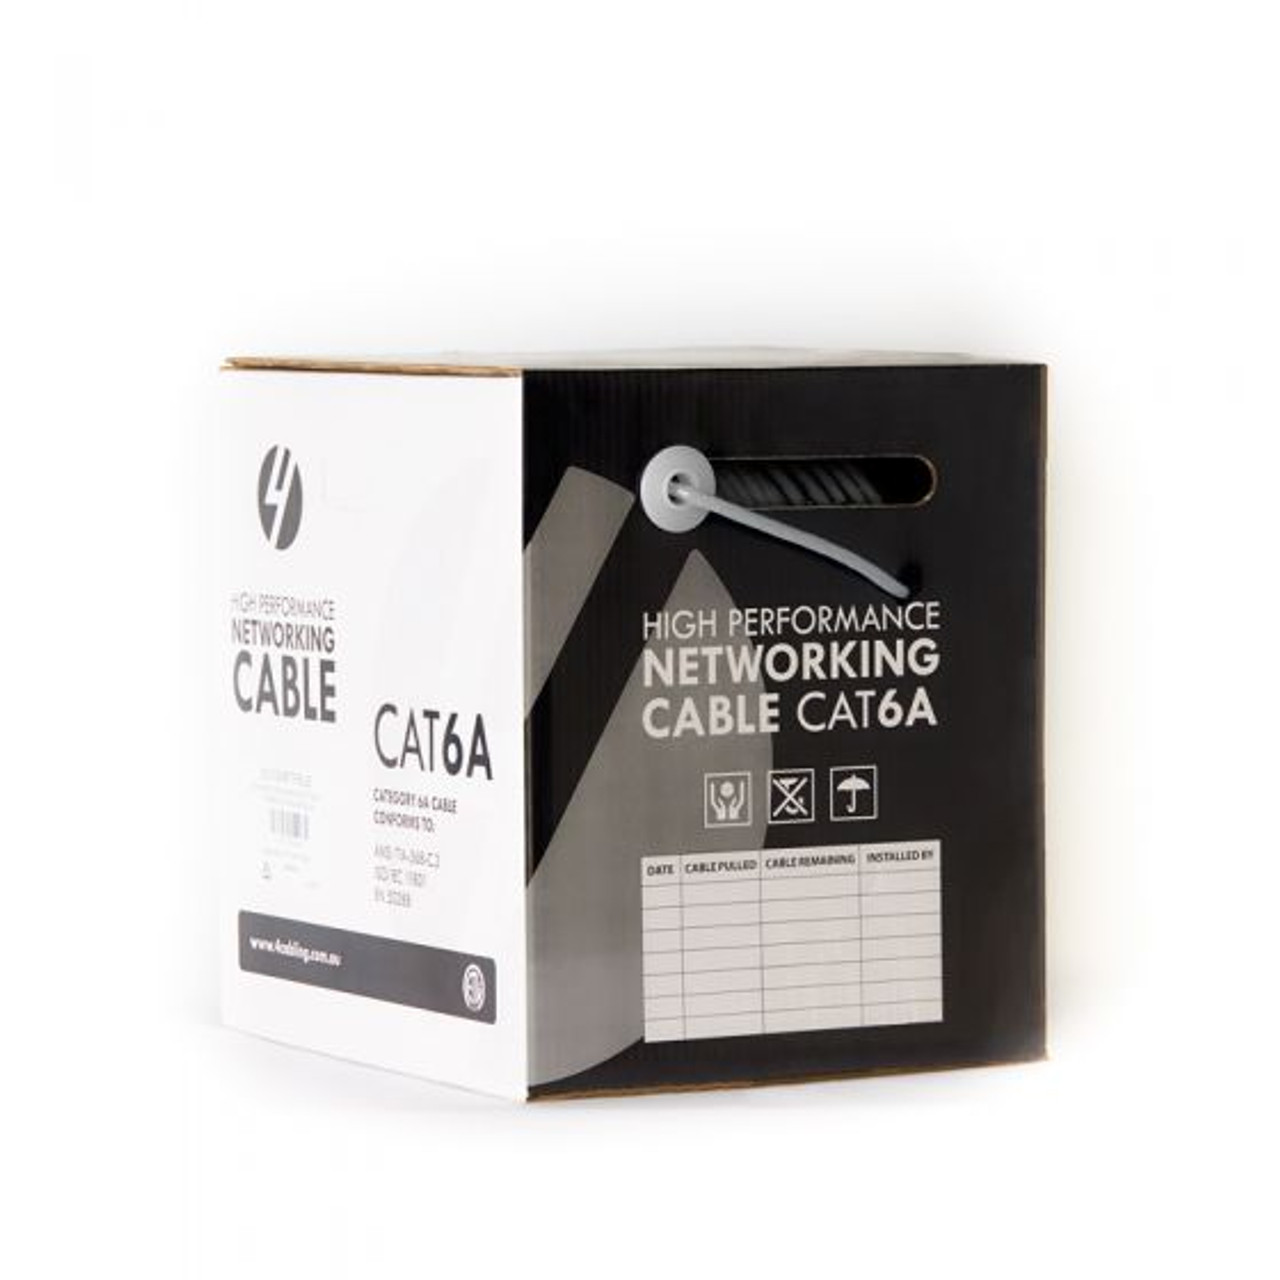 4Cabling CAT6A S/FTP LSZH Solid Core Cable Roll 305m : 23AWG: GREY